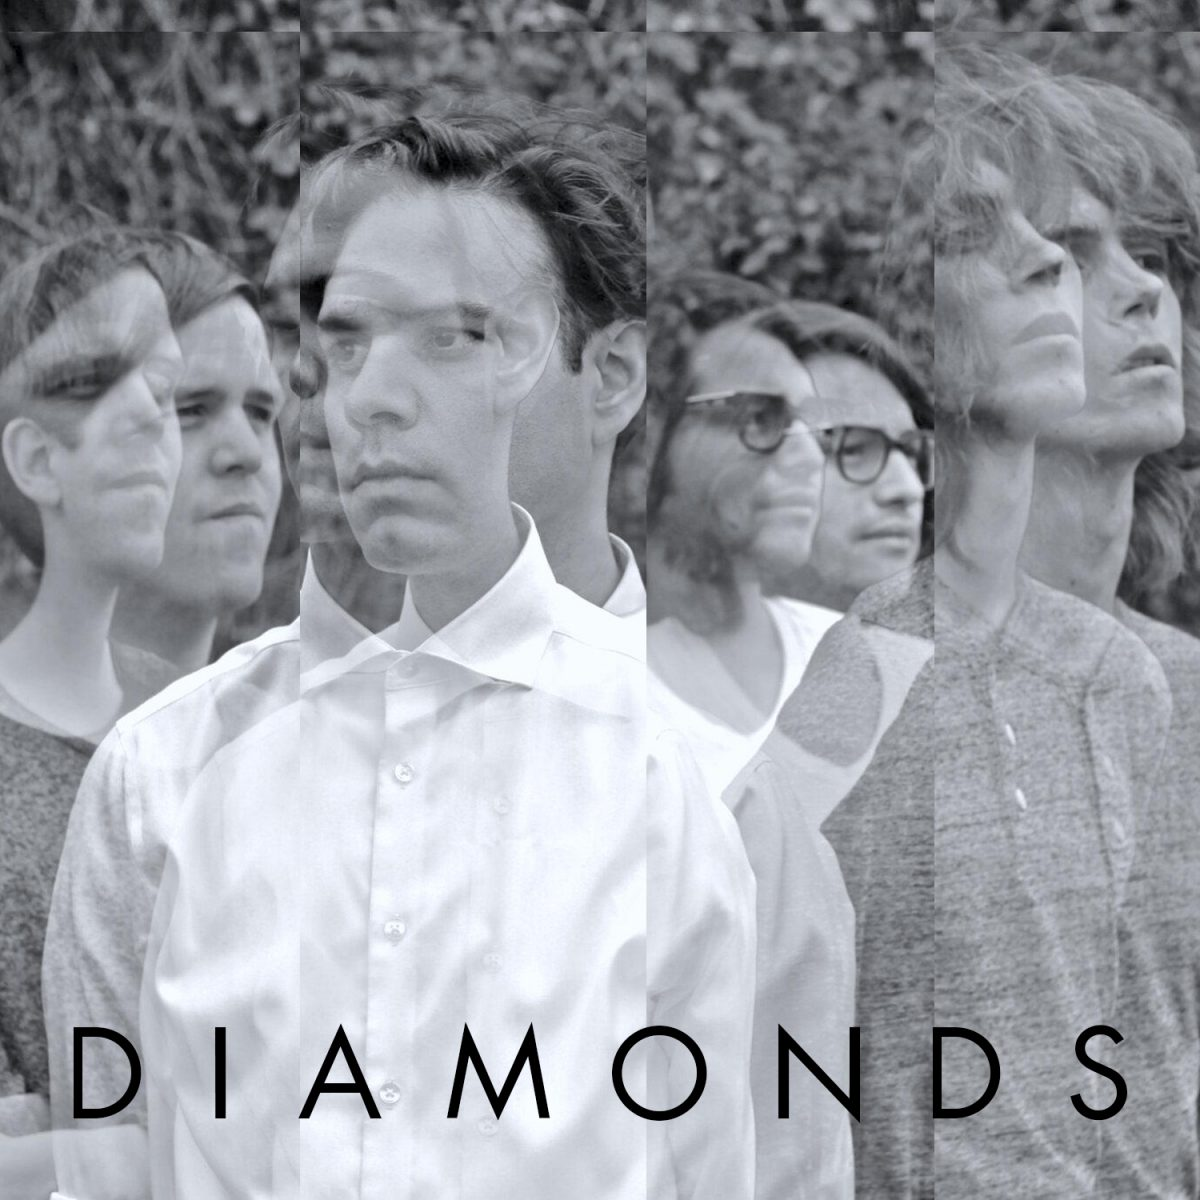 My White Diamond – D I A M O N D S